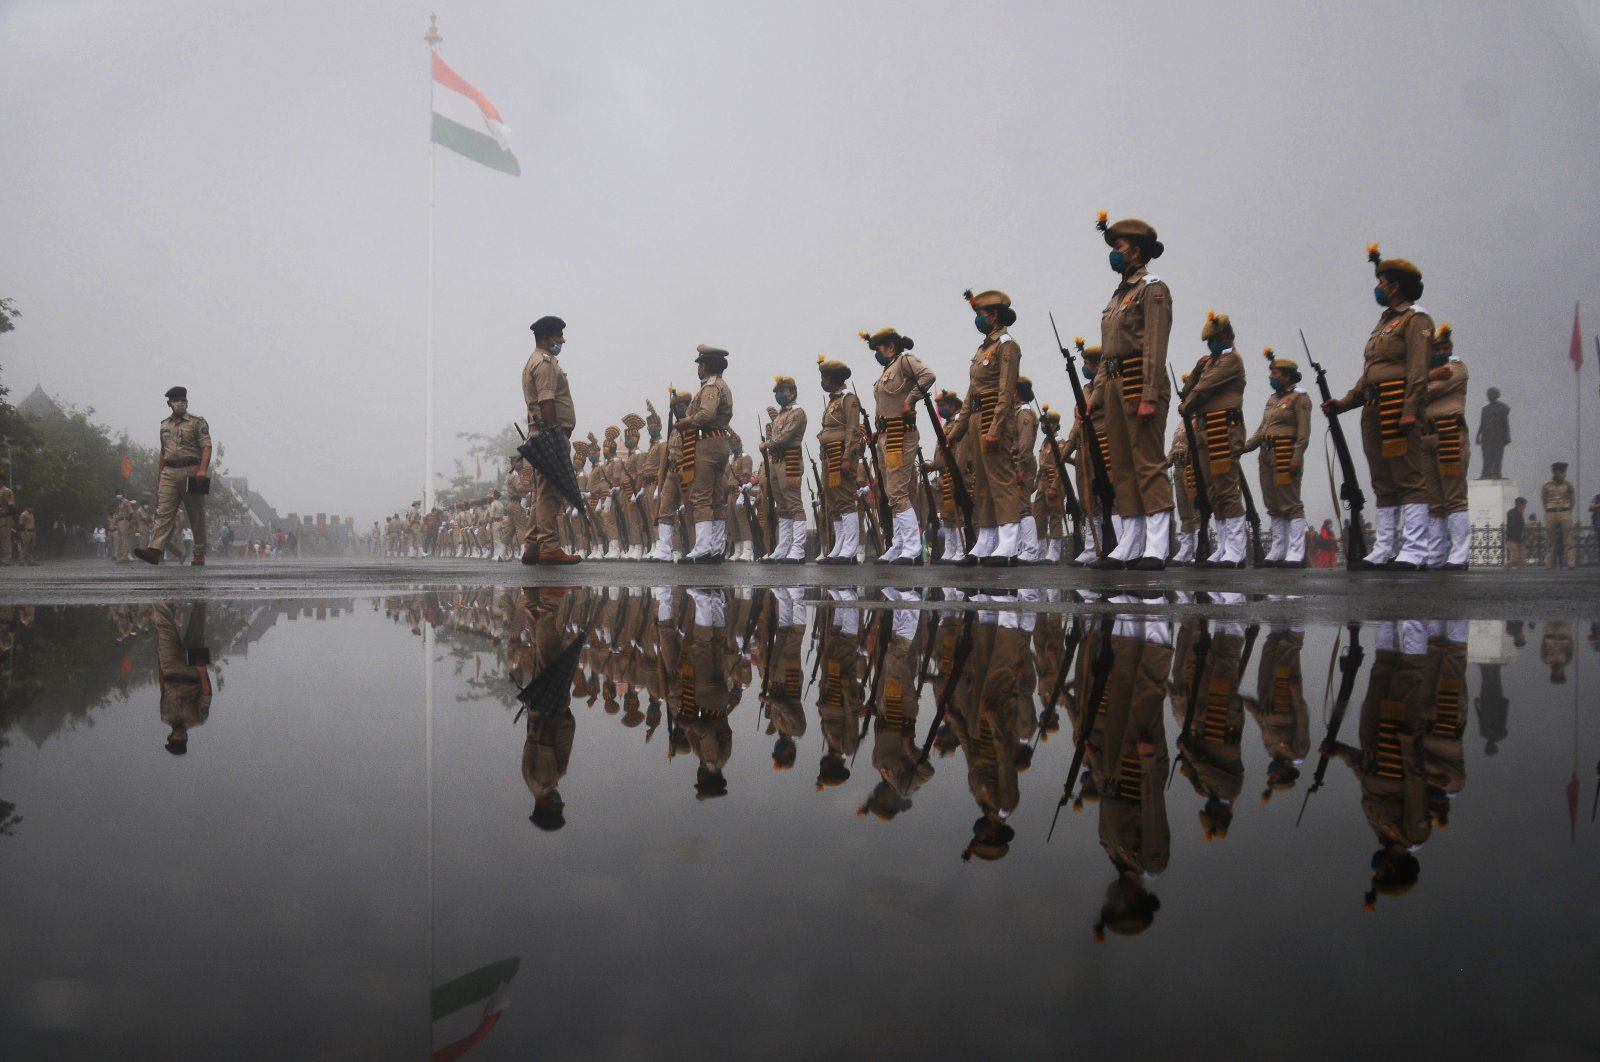 Indian police take part in a full dress rehearsal on the eve of the country's 74th Independence Day, which marks the end of British colonial rule, in the province of Shimla, India, Aug. 14, 2020. (AFP Photo)